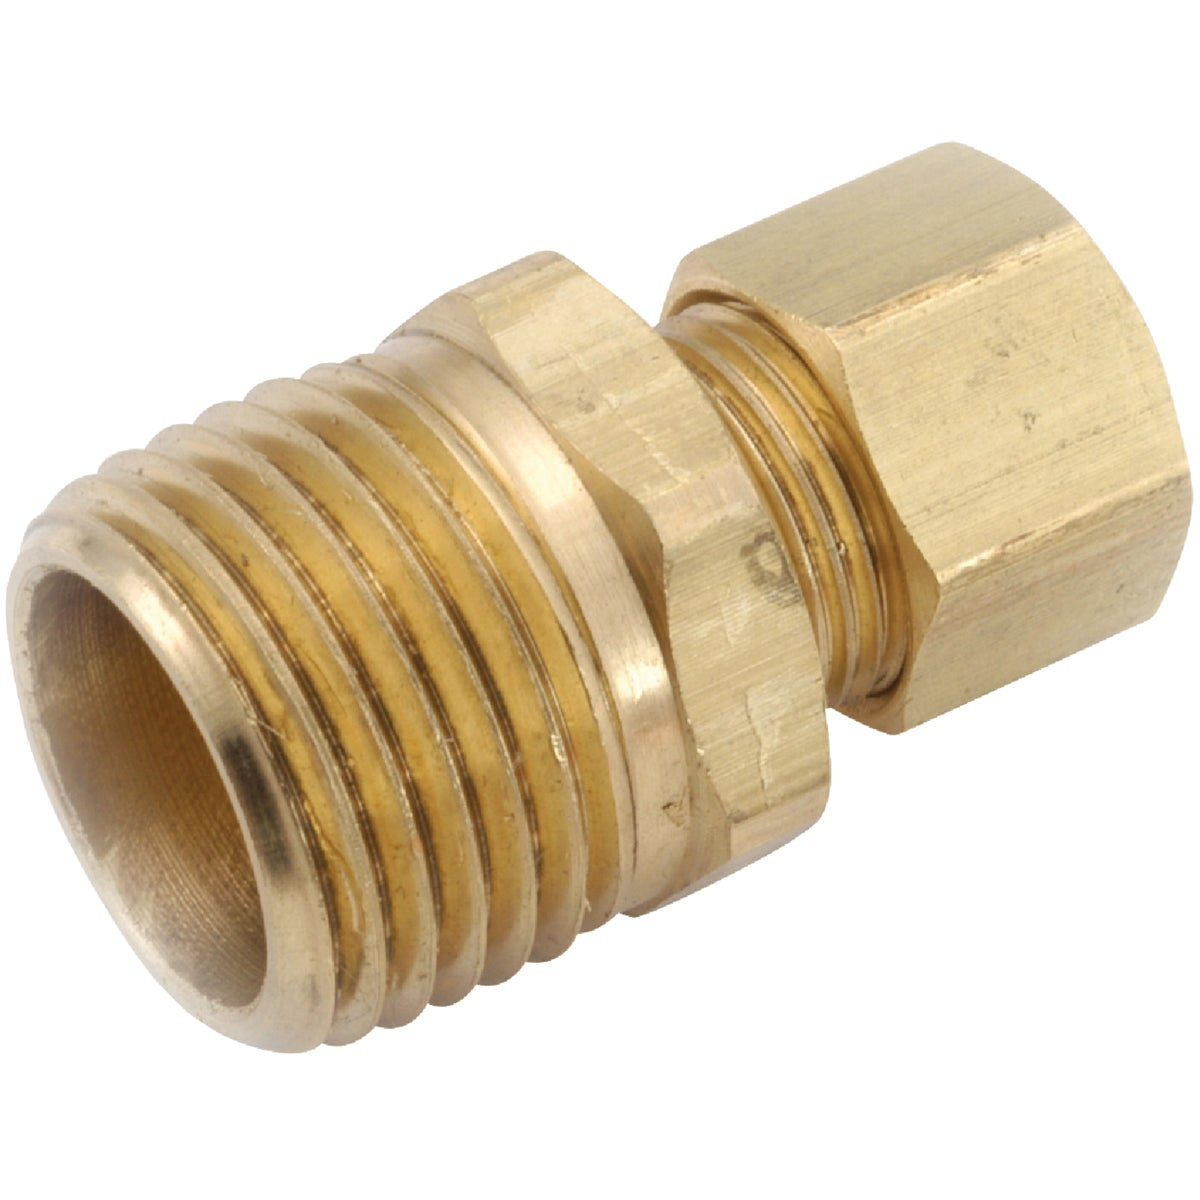 1/2X1/2 MALE CONNECTOR - 750068-0808 by Anderson Metals Corp